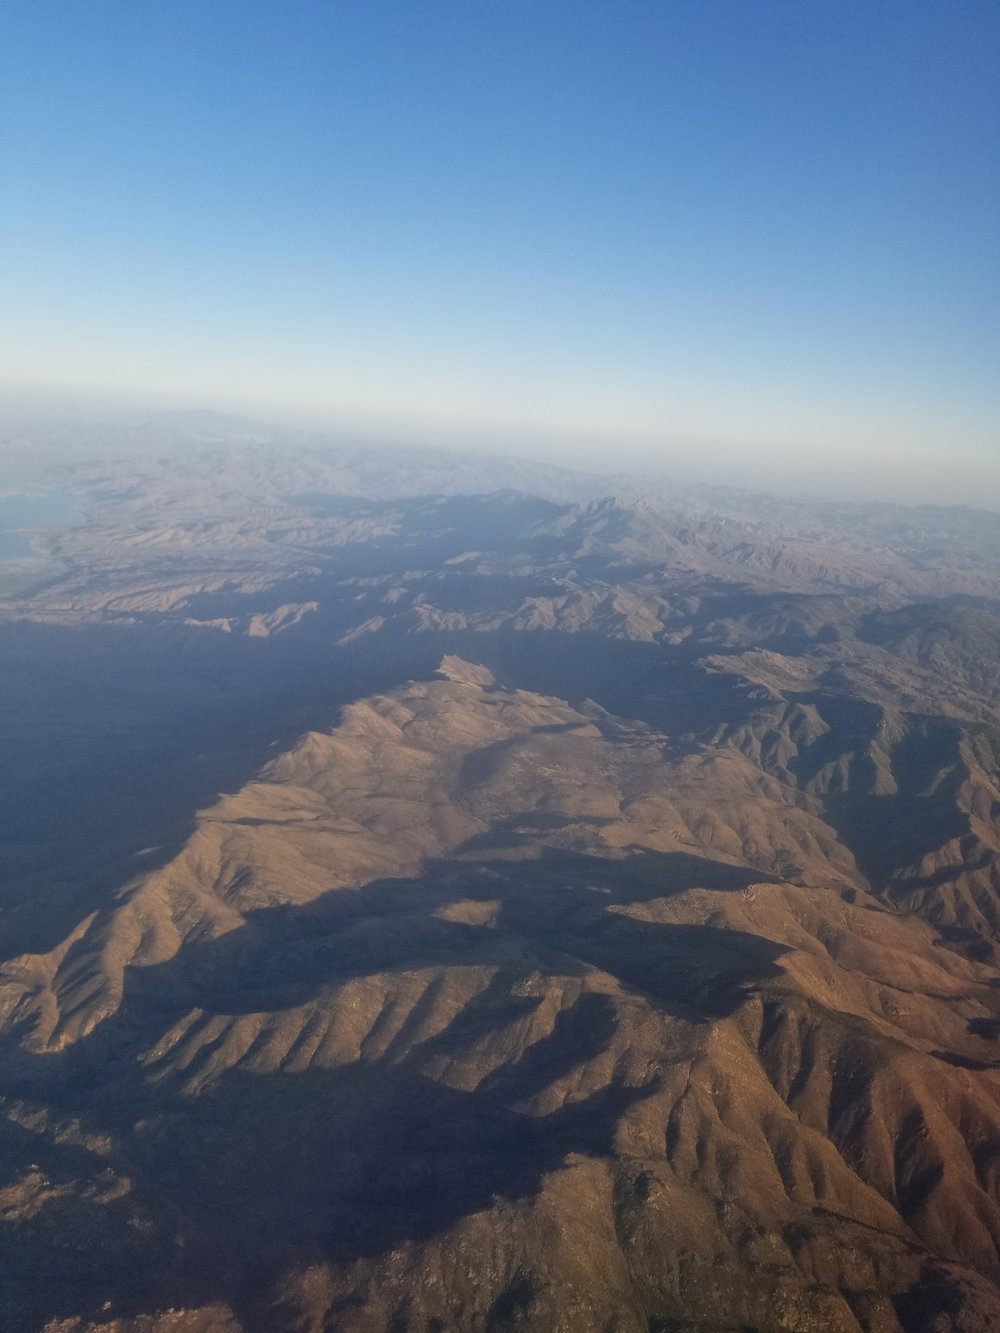 View of the mountains from the plane on our way to Seattle....via Phoenix!